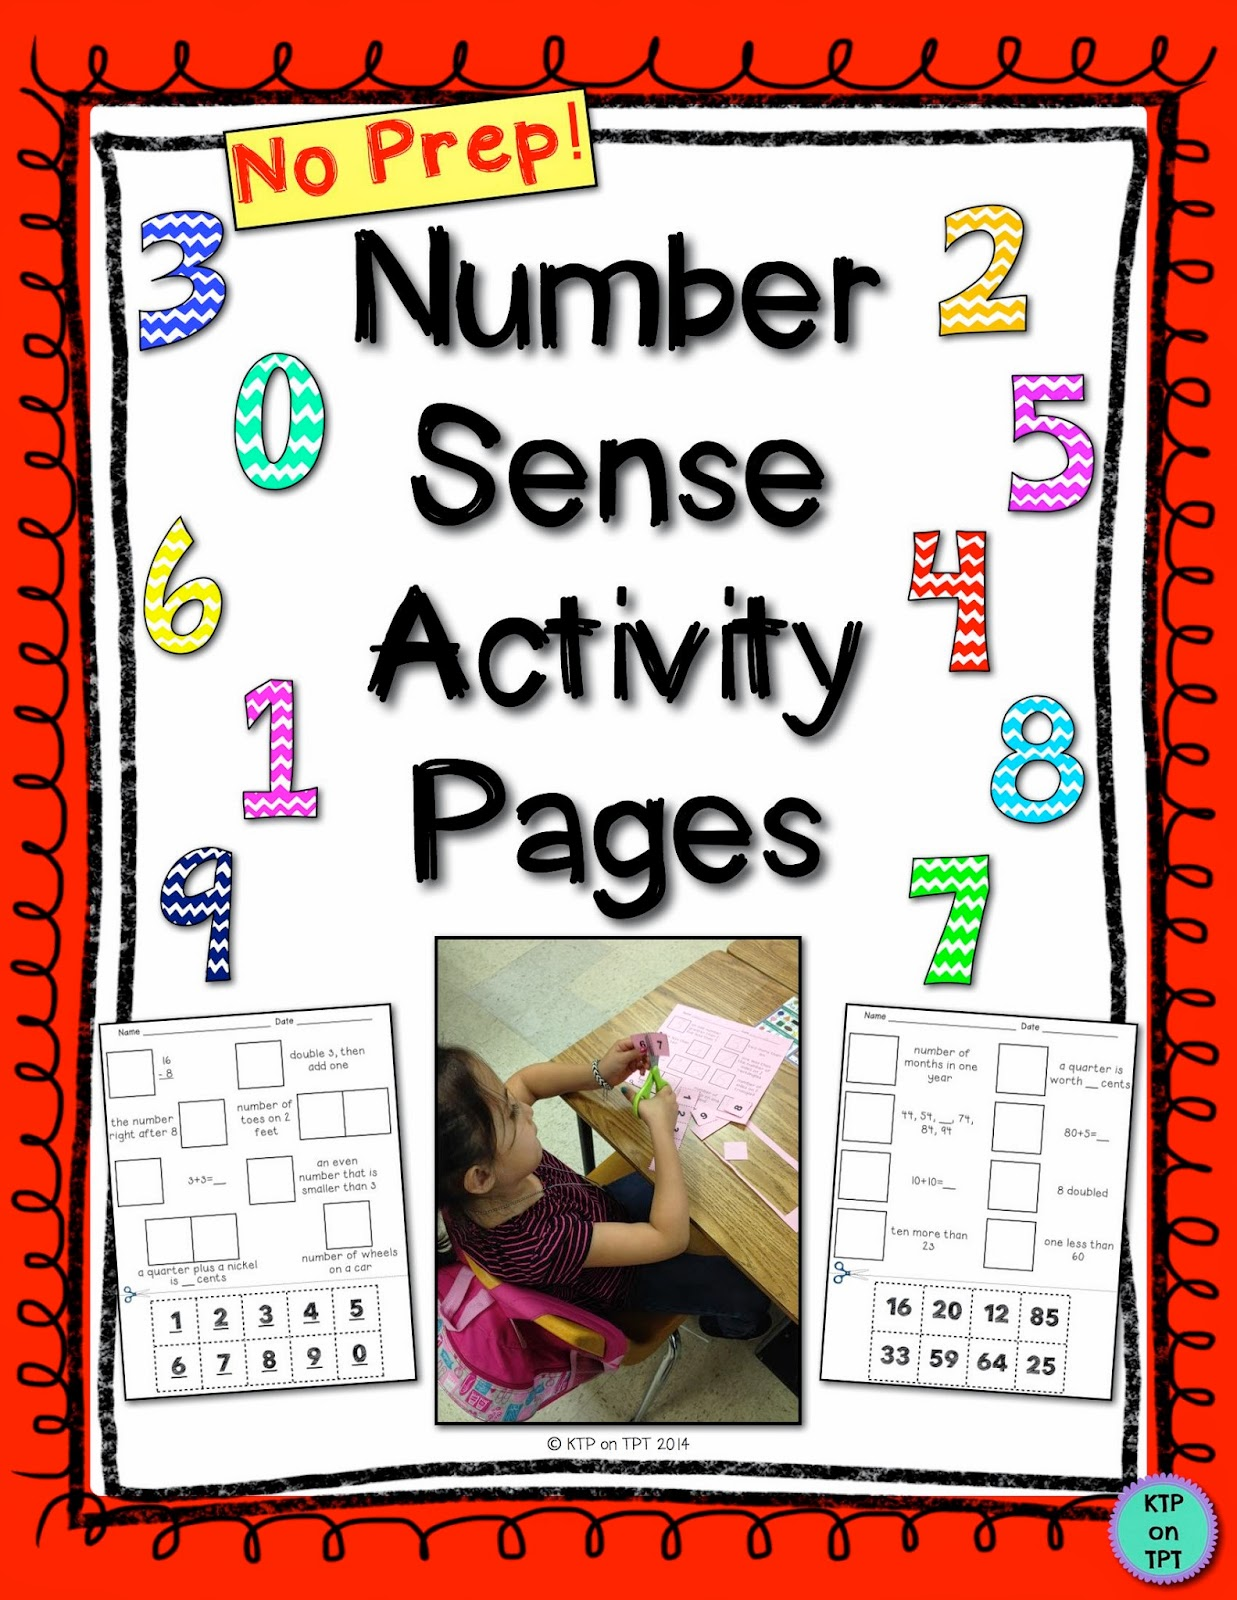 https://www.teacherspayteachers.com/Product/No-Prep-Number-Sense-Activity-Pages-FREE-SAMPLE-1232269